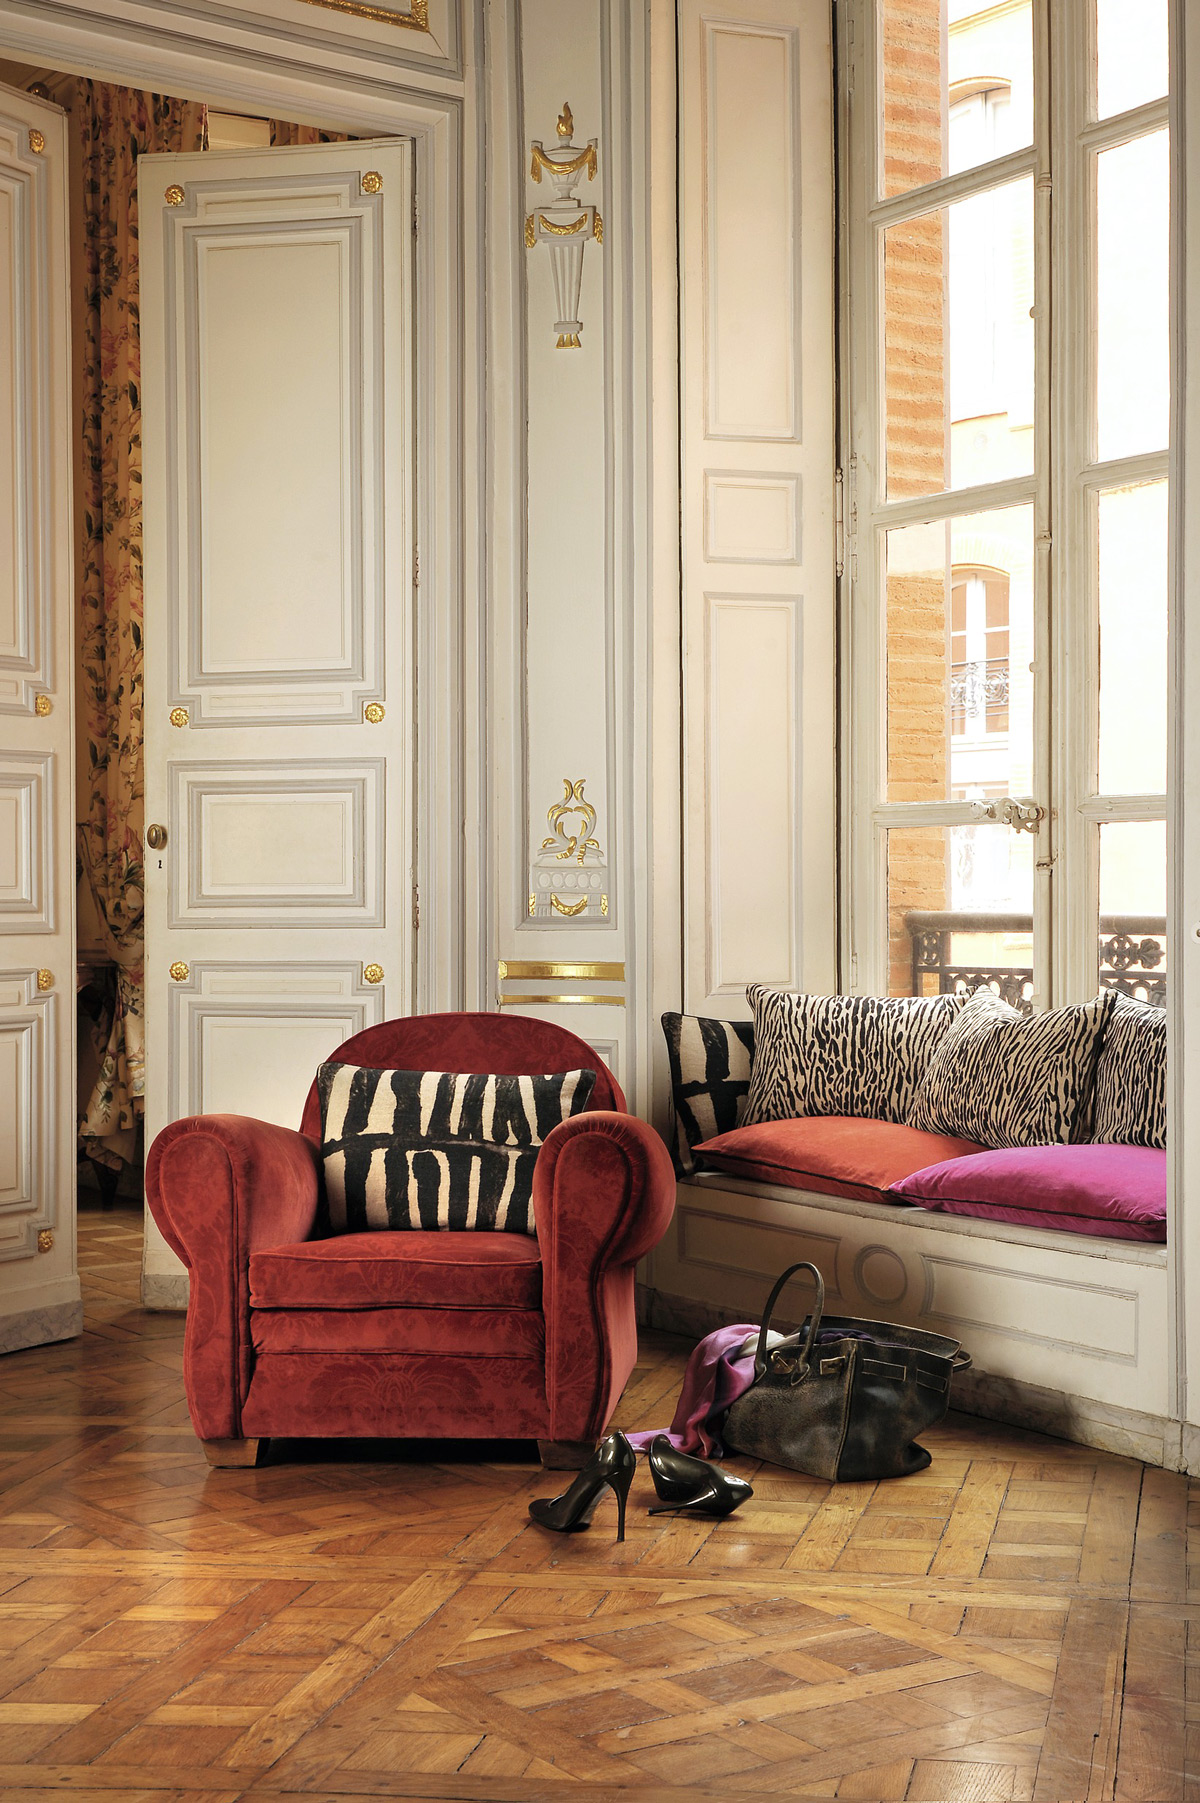 Filet Decoration Interieur Decoration Amenagement Interieur Affordable Ms Interieur